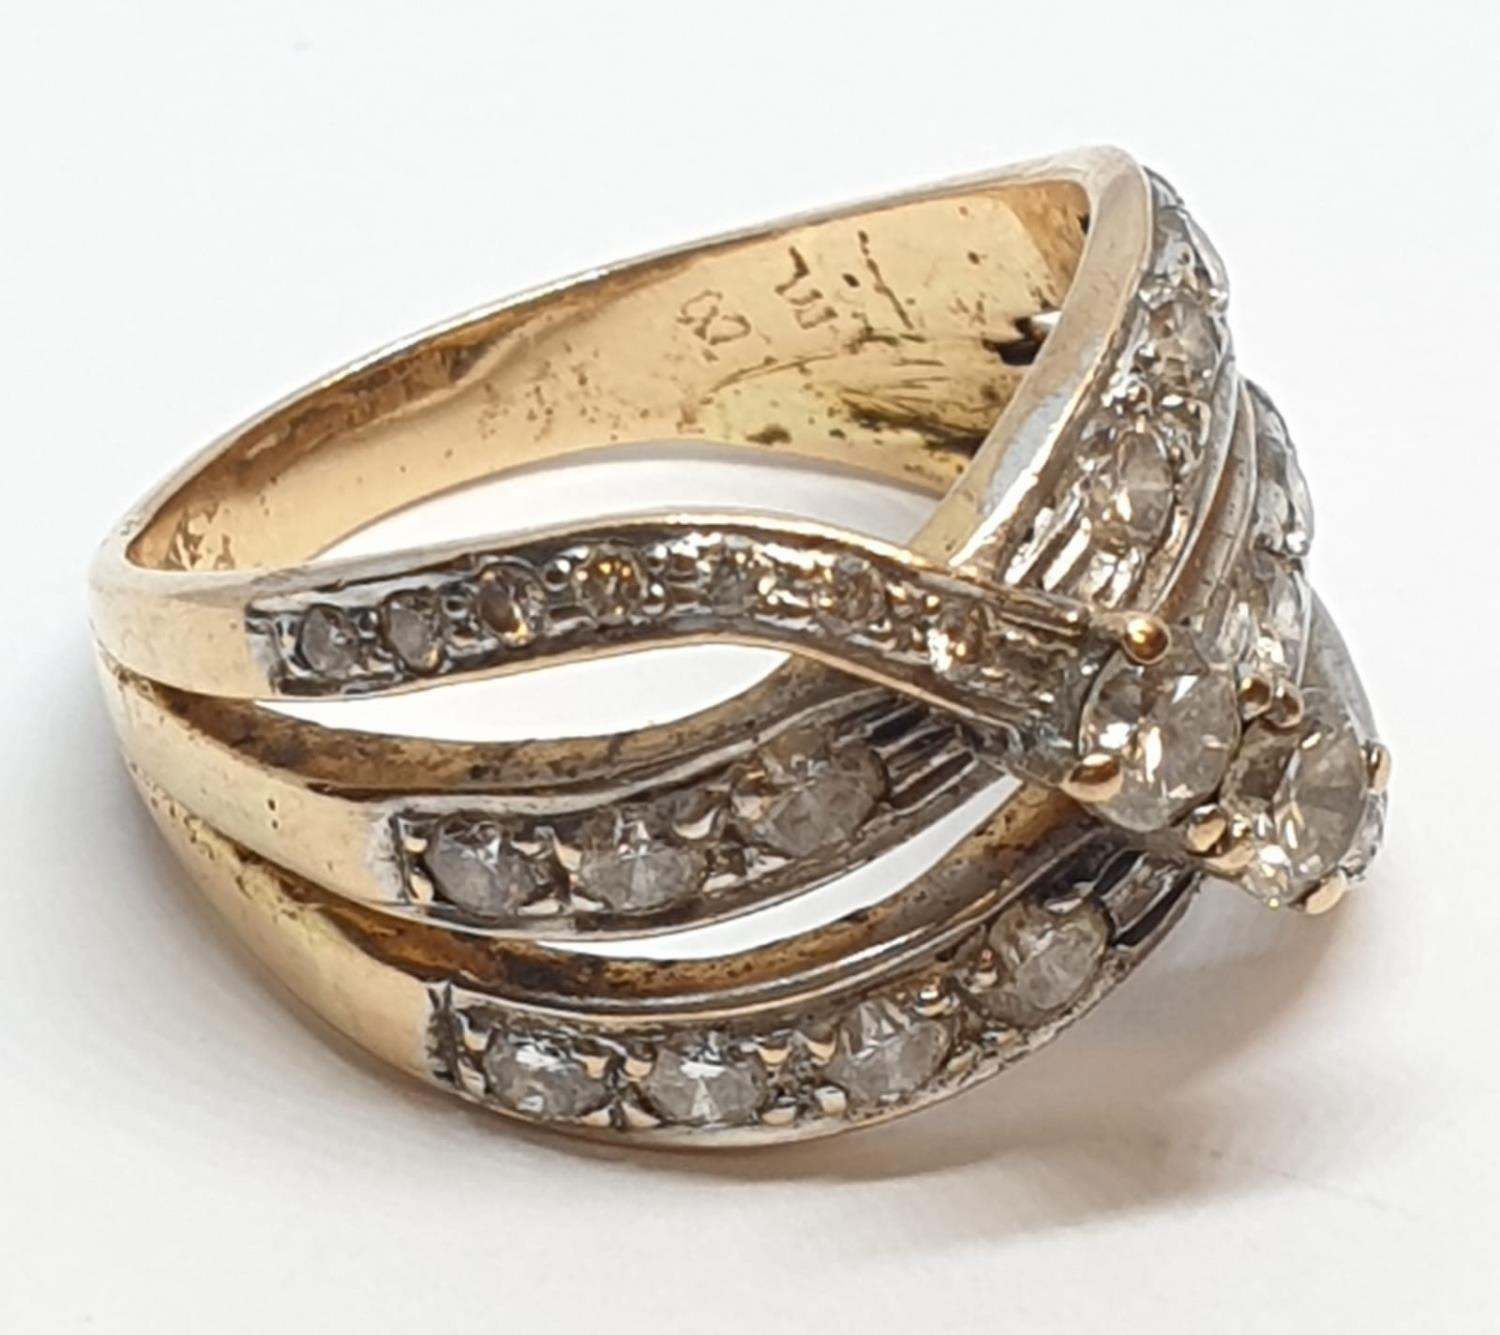 18ct Yellow gold diamond set fancy three row twist band ring. Weight 8.5g, Approx. 0.60ct of - Image 2 of 14